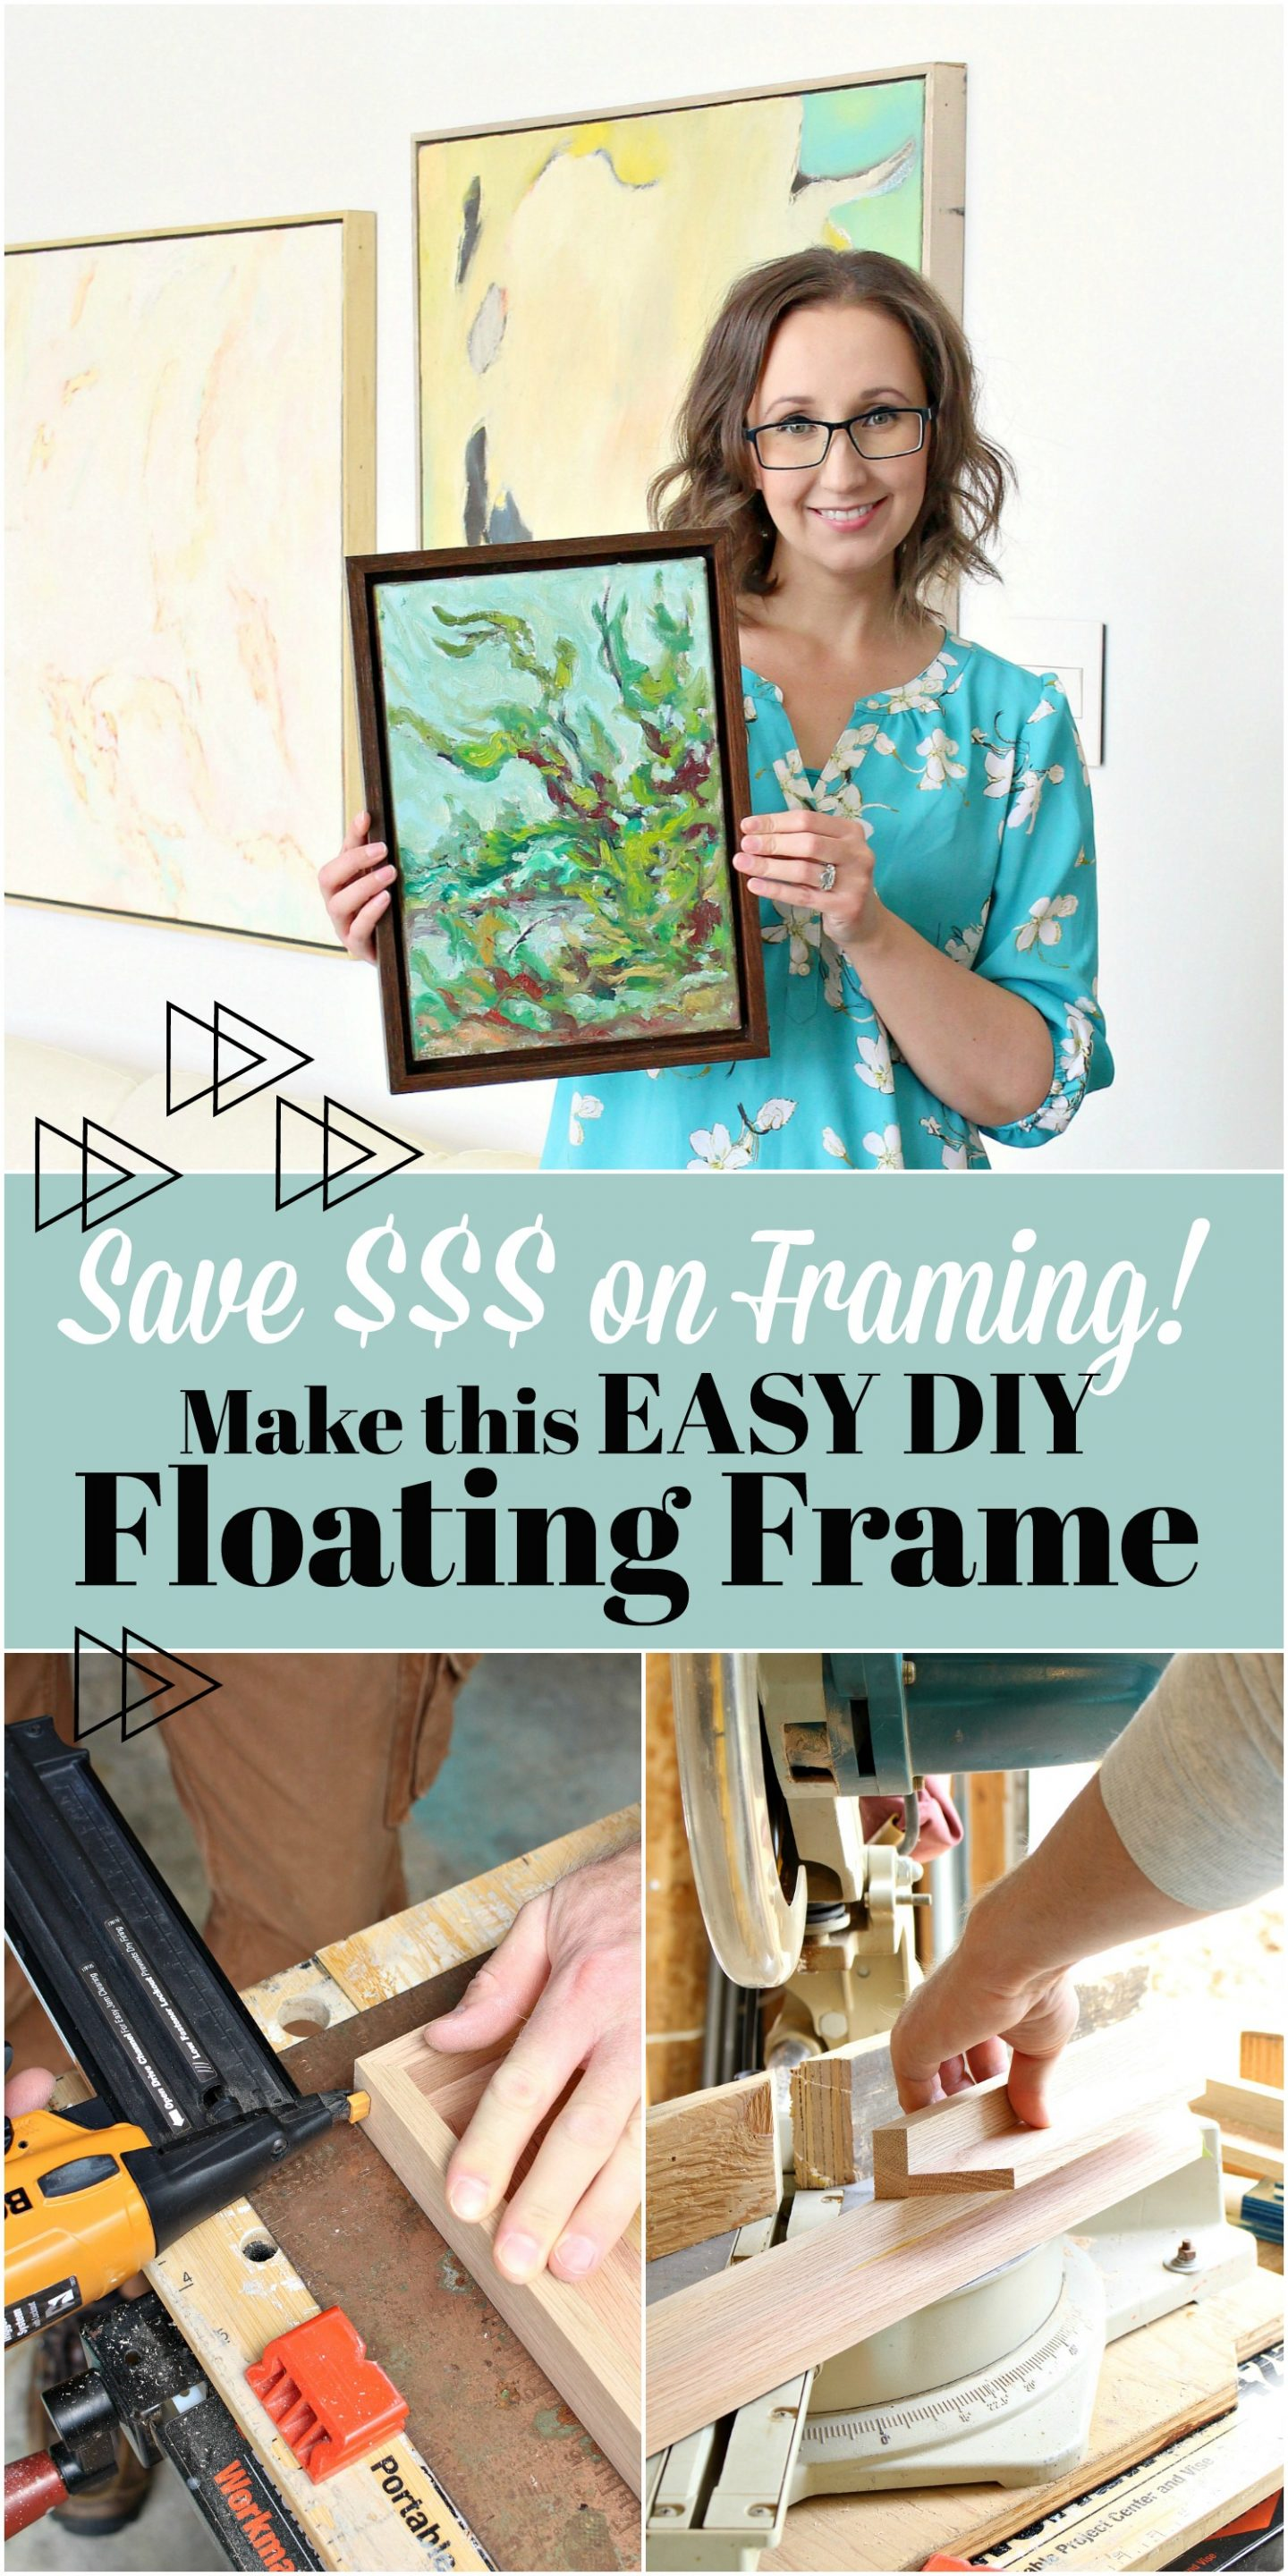 Learn How to Make this Easy DIY Floating Frame and Save a Ton of Money on Framing!